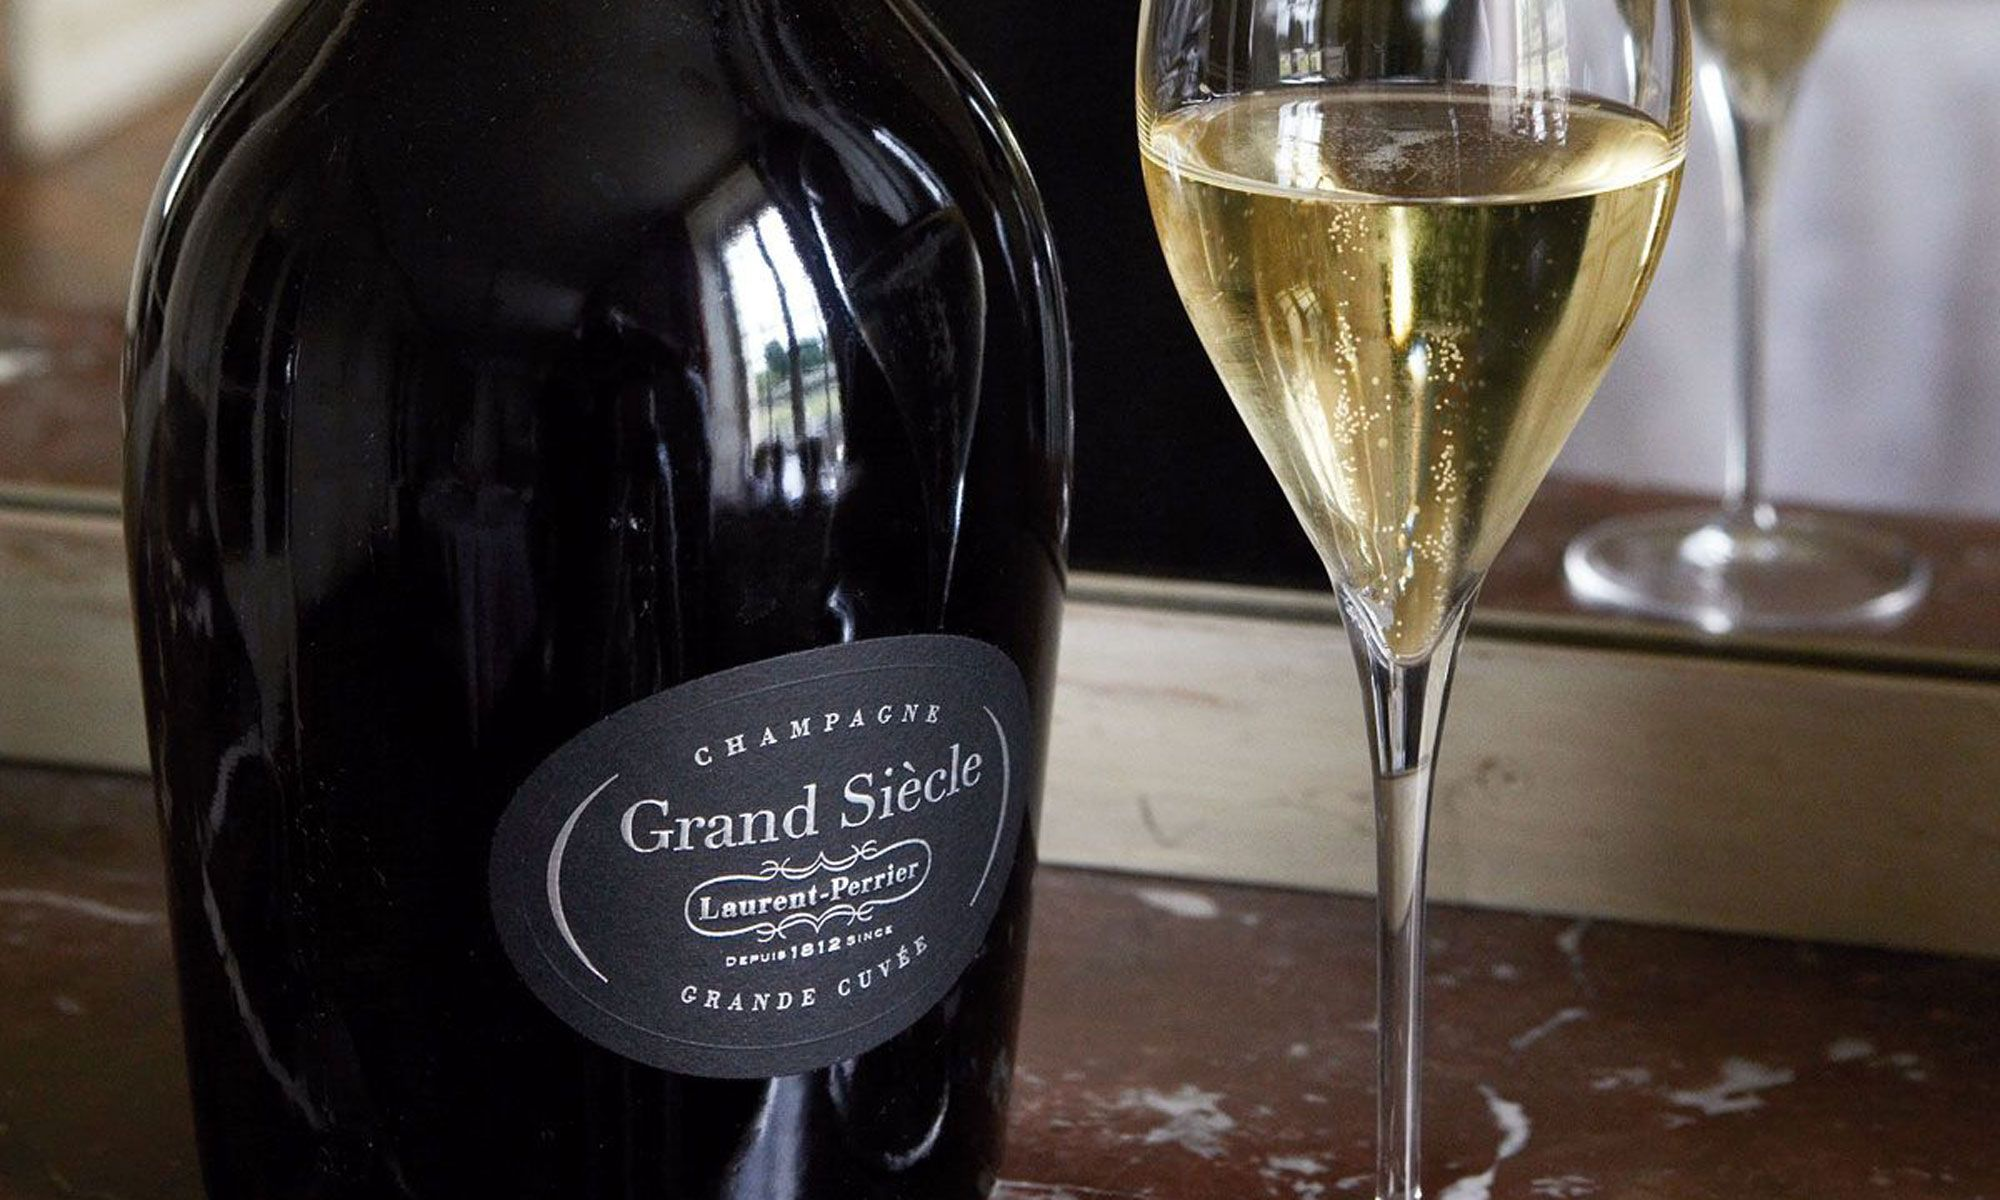 Arcane Showcases A Taste Of Spring With Laurent-Perrier Grand Siecle Champagne